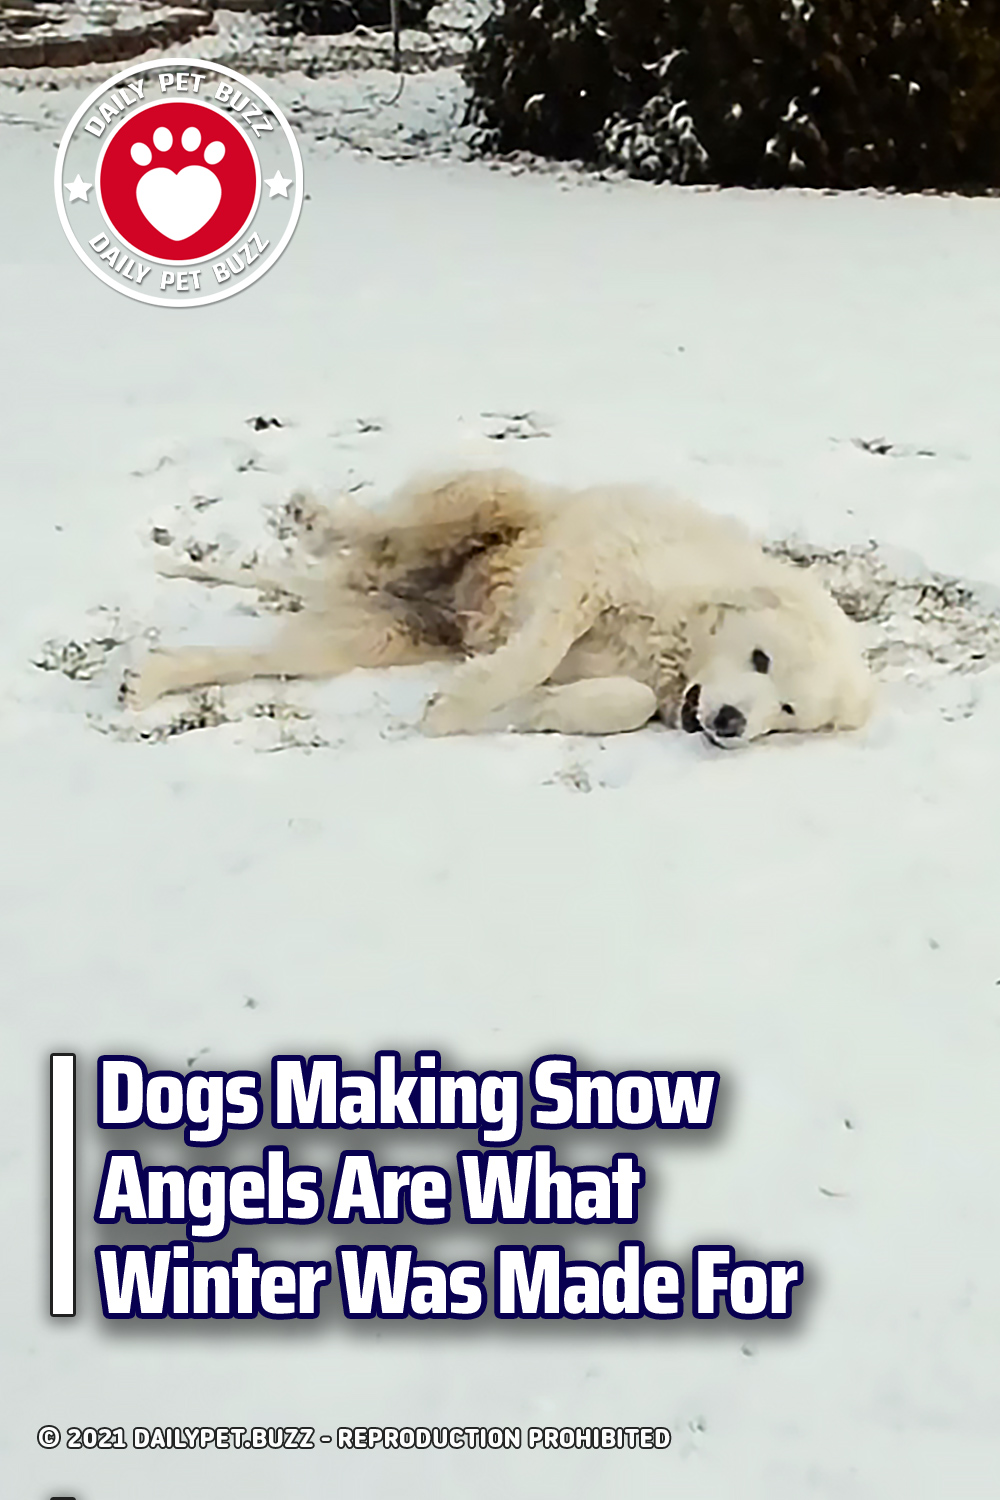 Dogs Making Snow Angels Are What Winter Was Made For